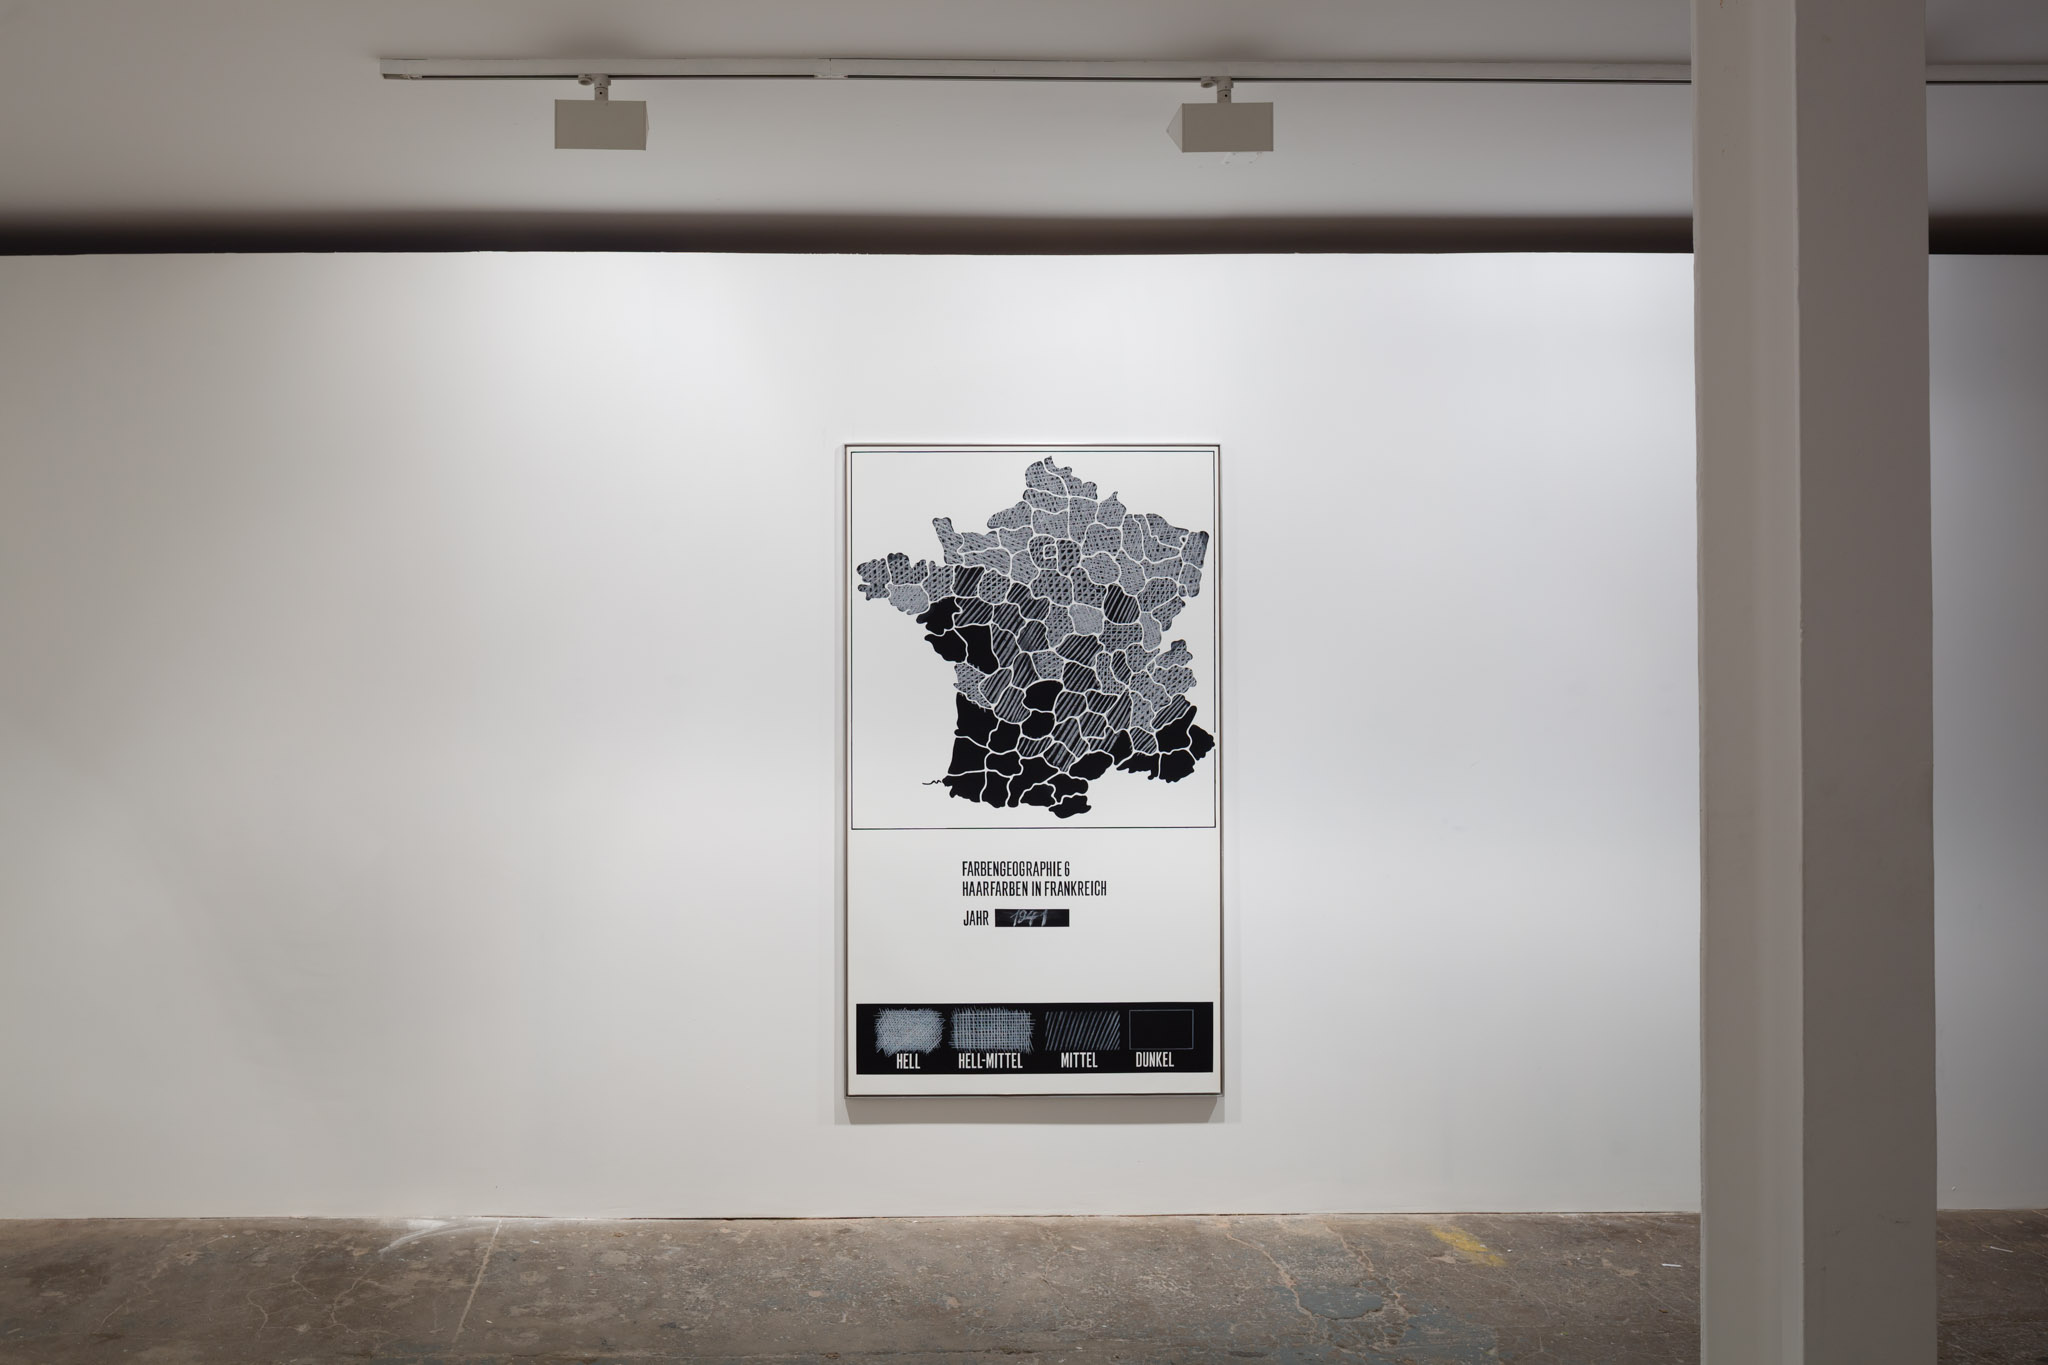 KP Brehmer, Farbengeographie 6 Haarfarben in Frankreich, 1972, mixed media technique on PVC sheet, 200 x 115 x 2 cm / 79 x 45 x 1 ins unique. Nuclear War: What's in it for you? Curated by Will Benedict , K P Brehmer | Nicolas Ceccaldi | Gaylen Gerber | Suzy Lake | Ludmila Seefried-Matějková